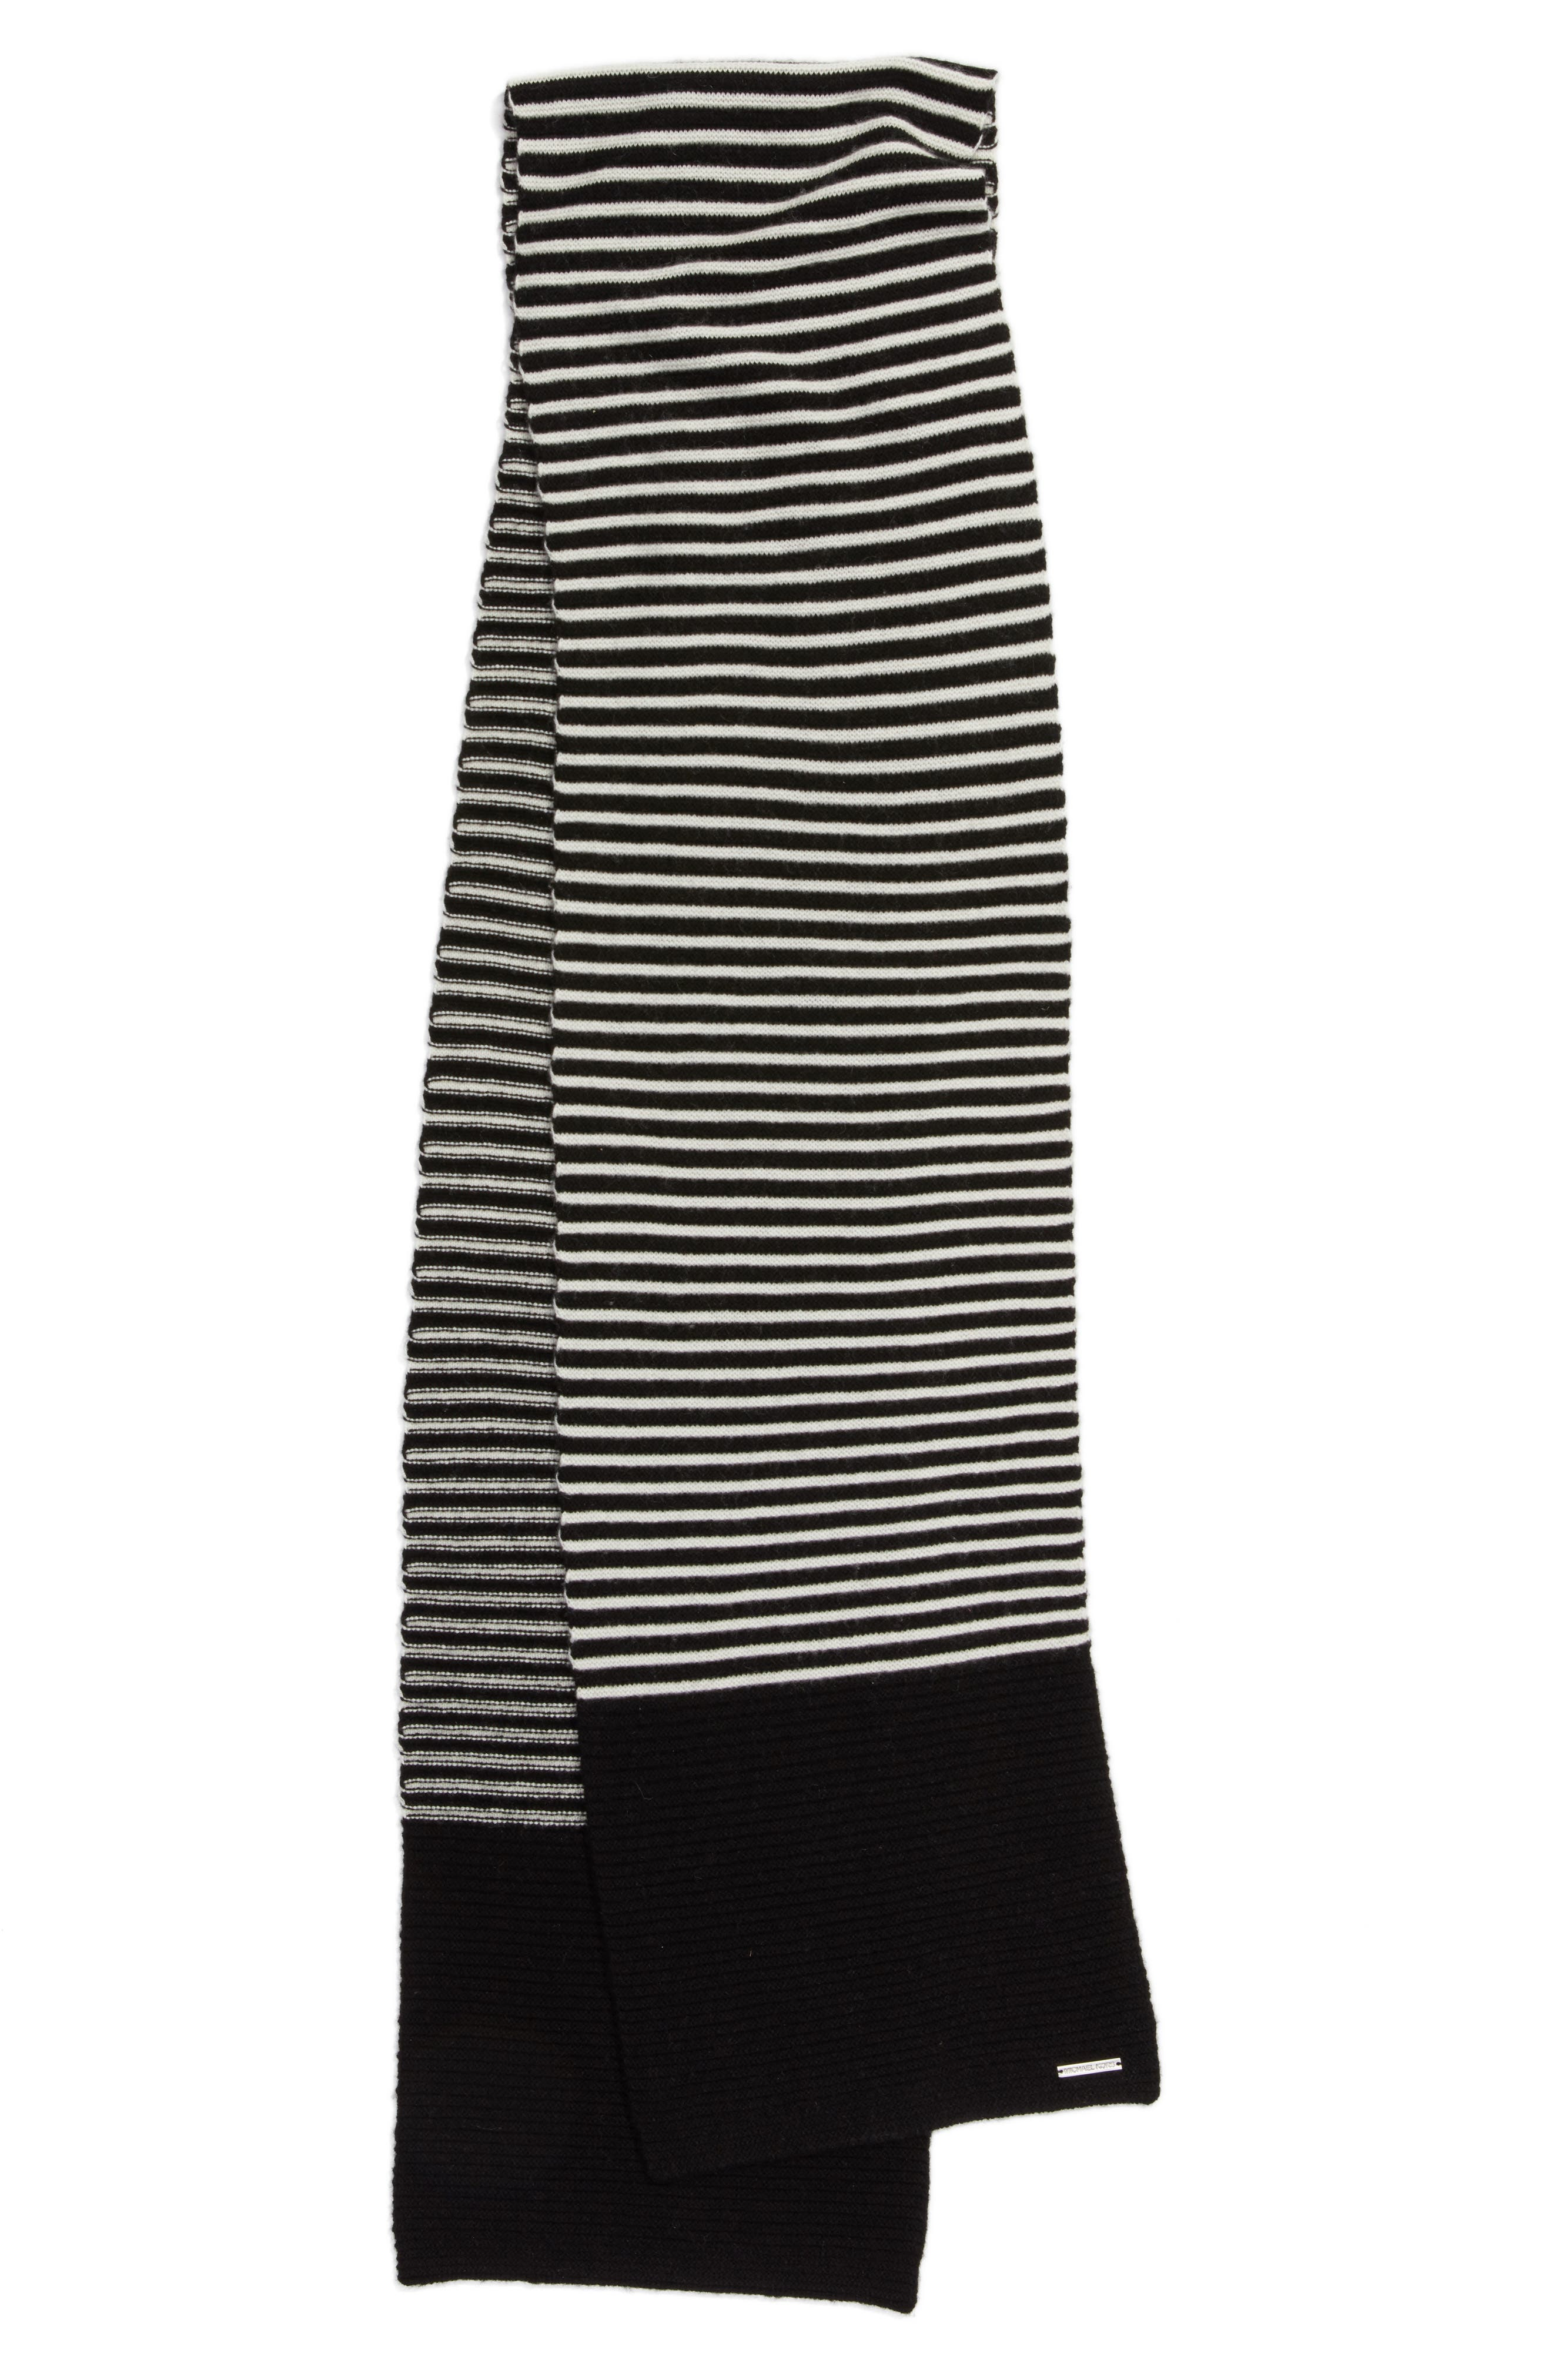 Double Links Wool & Cashmere Scarf,                             Alternate thumbnail 2, color,                             Black/ Cream